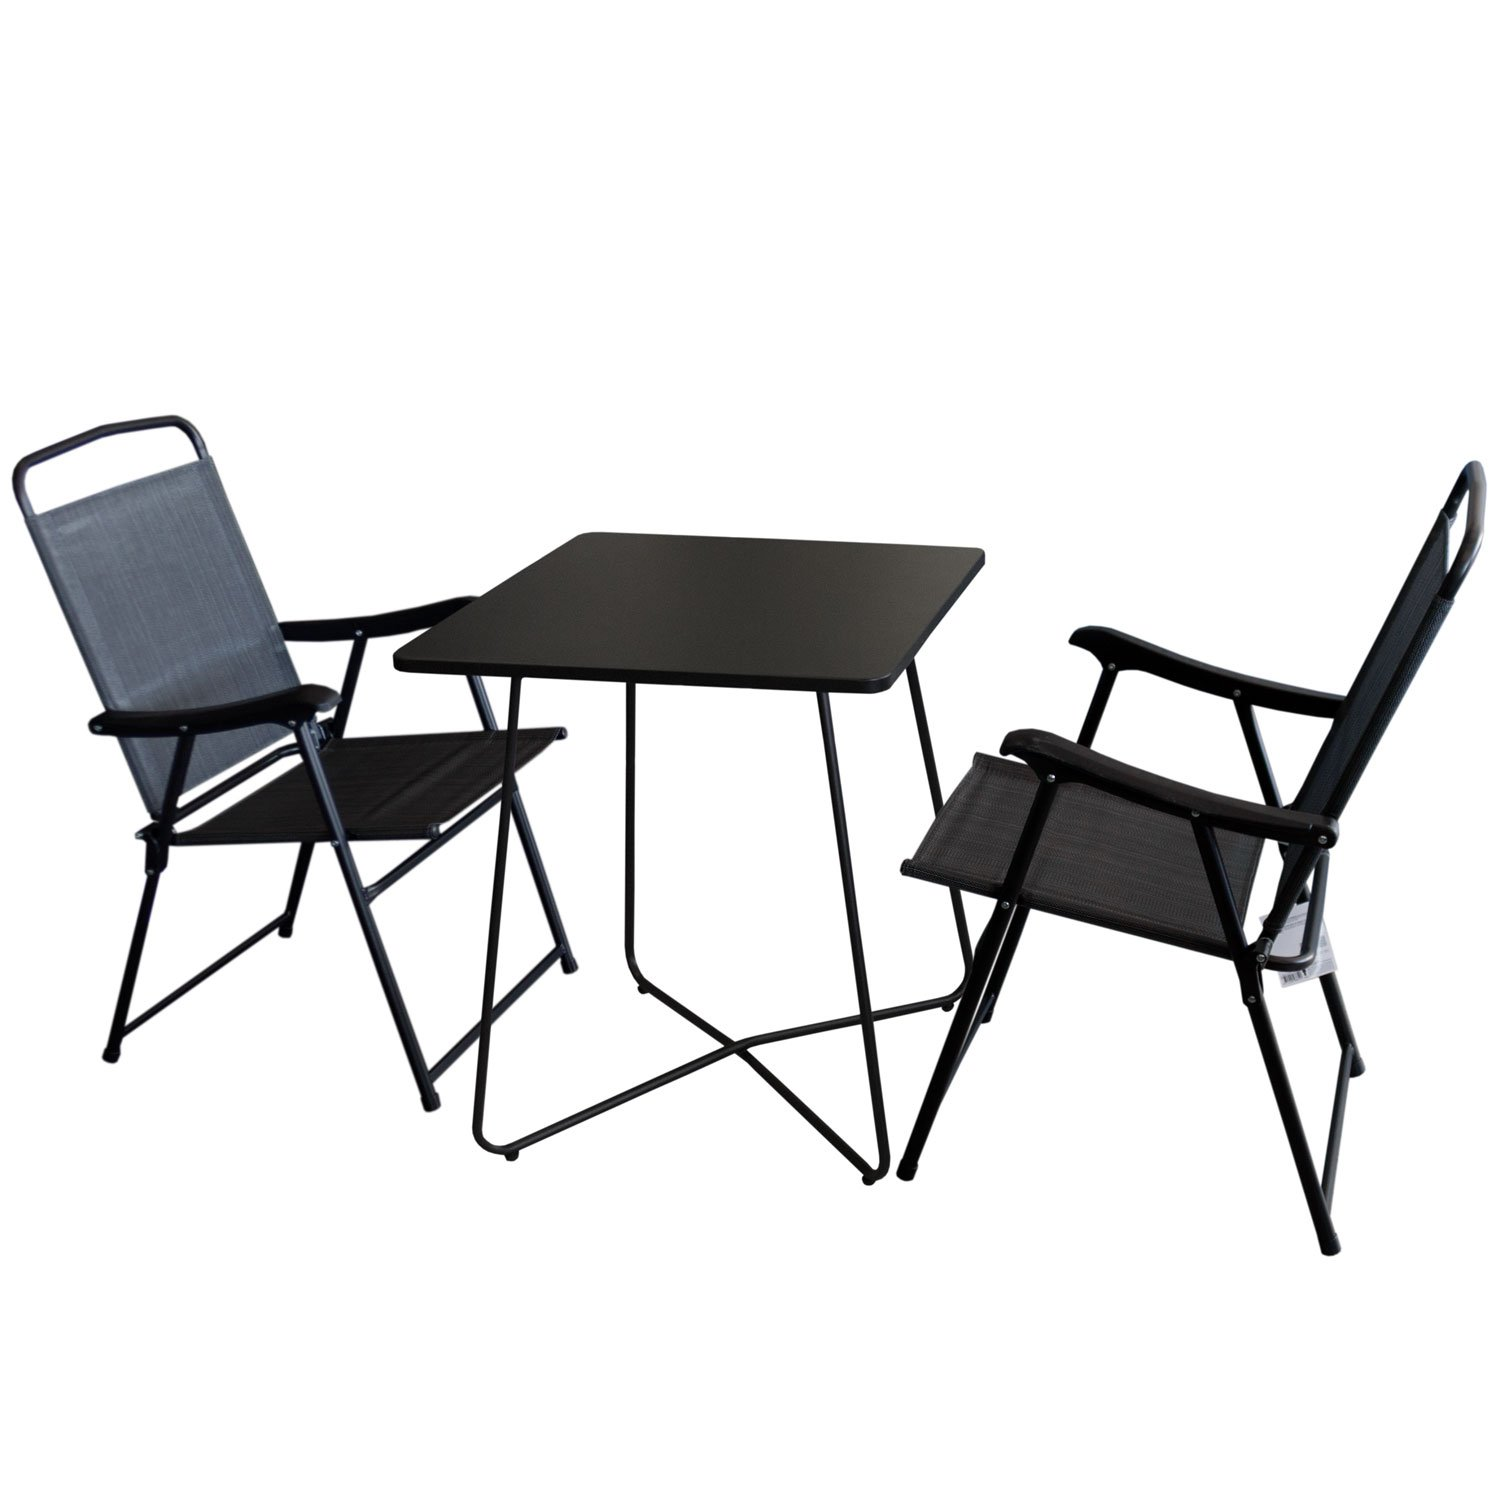 3tlg balkonm bel set bistrotisch metall 60x60cm schwarz 2x campingstuhl. Black Bedroom Furniture Sets. Home Design Ideas